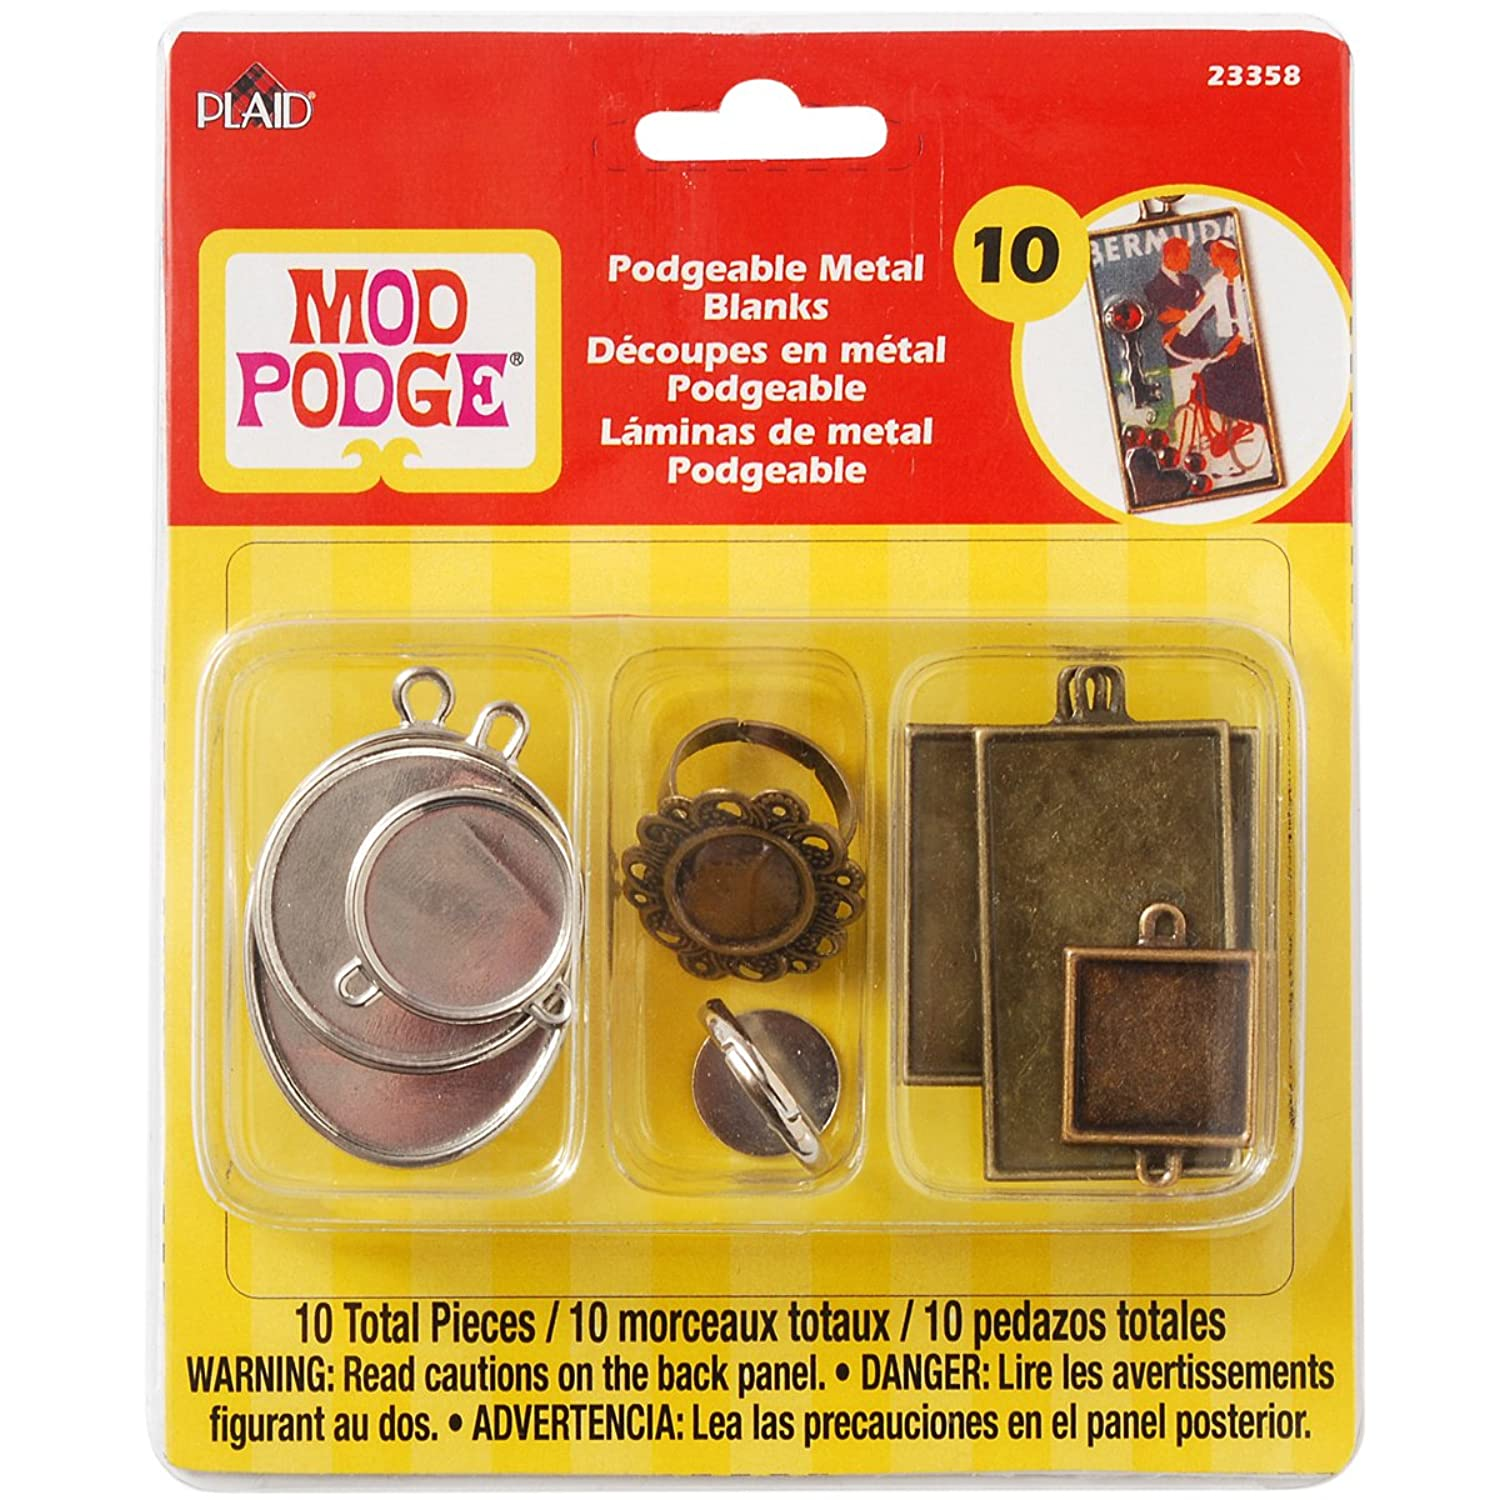 Mod Podge Podgeable Metal Blanks, 23358 (10-Pack)